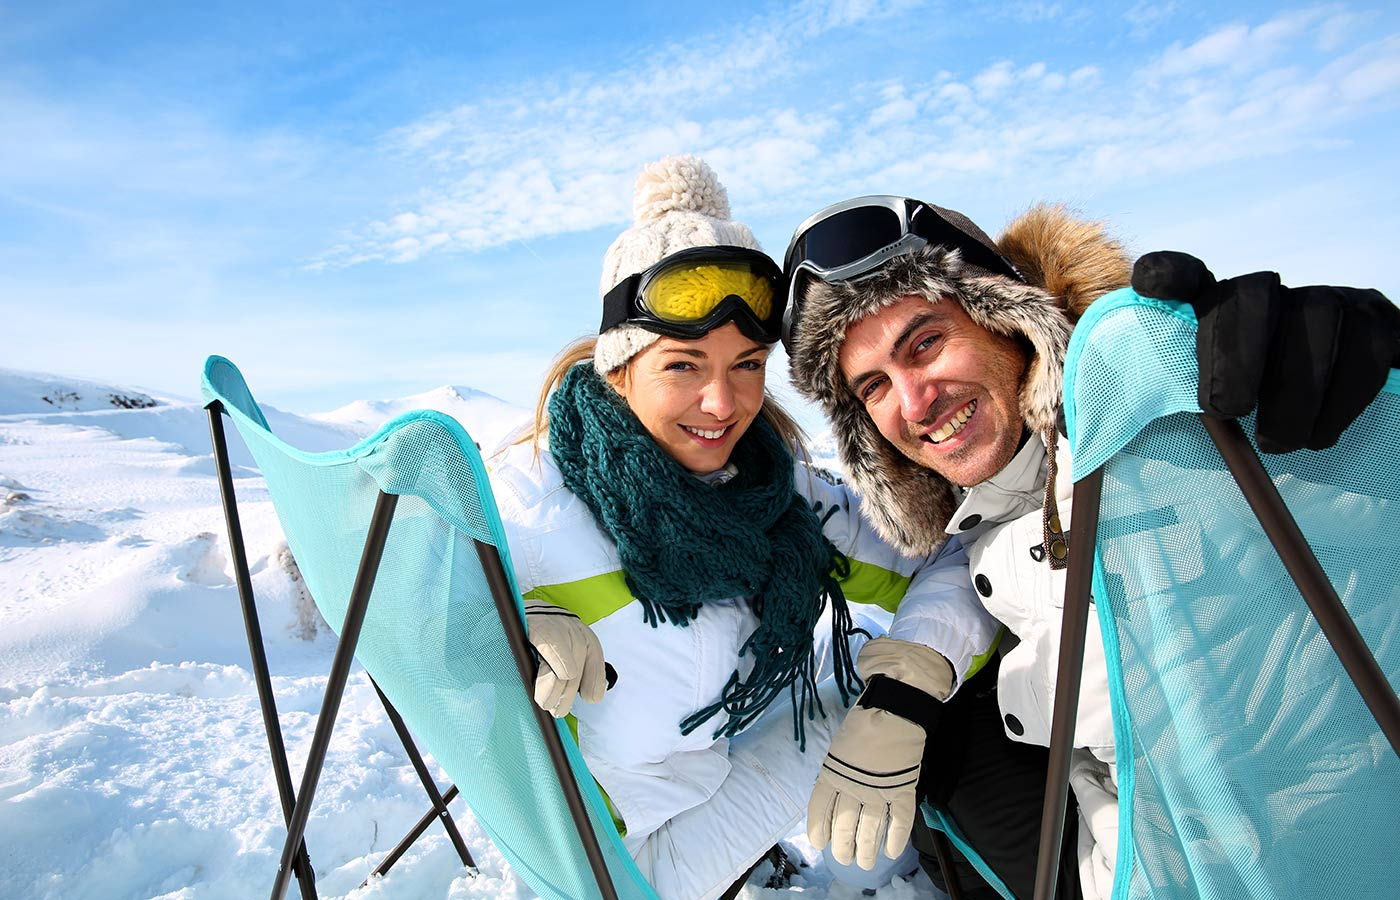 Young smiling couple with snow equipment enjoying the mountain sun on two decks in the snow